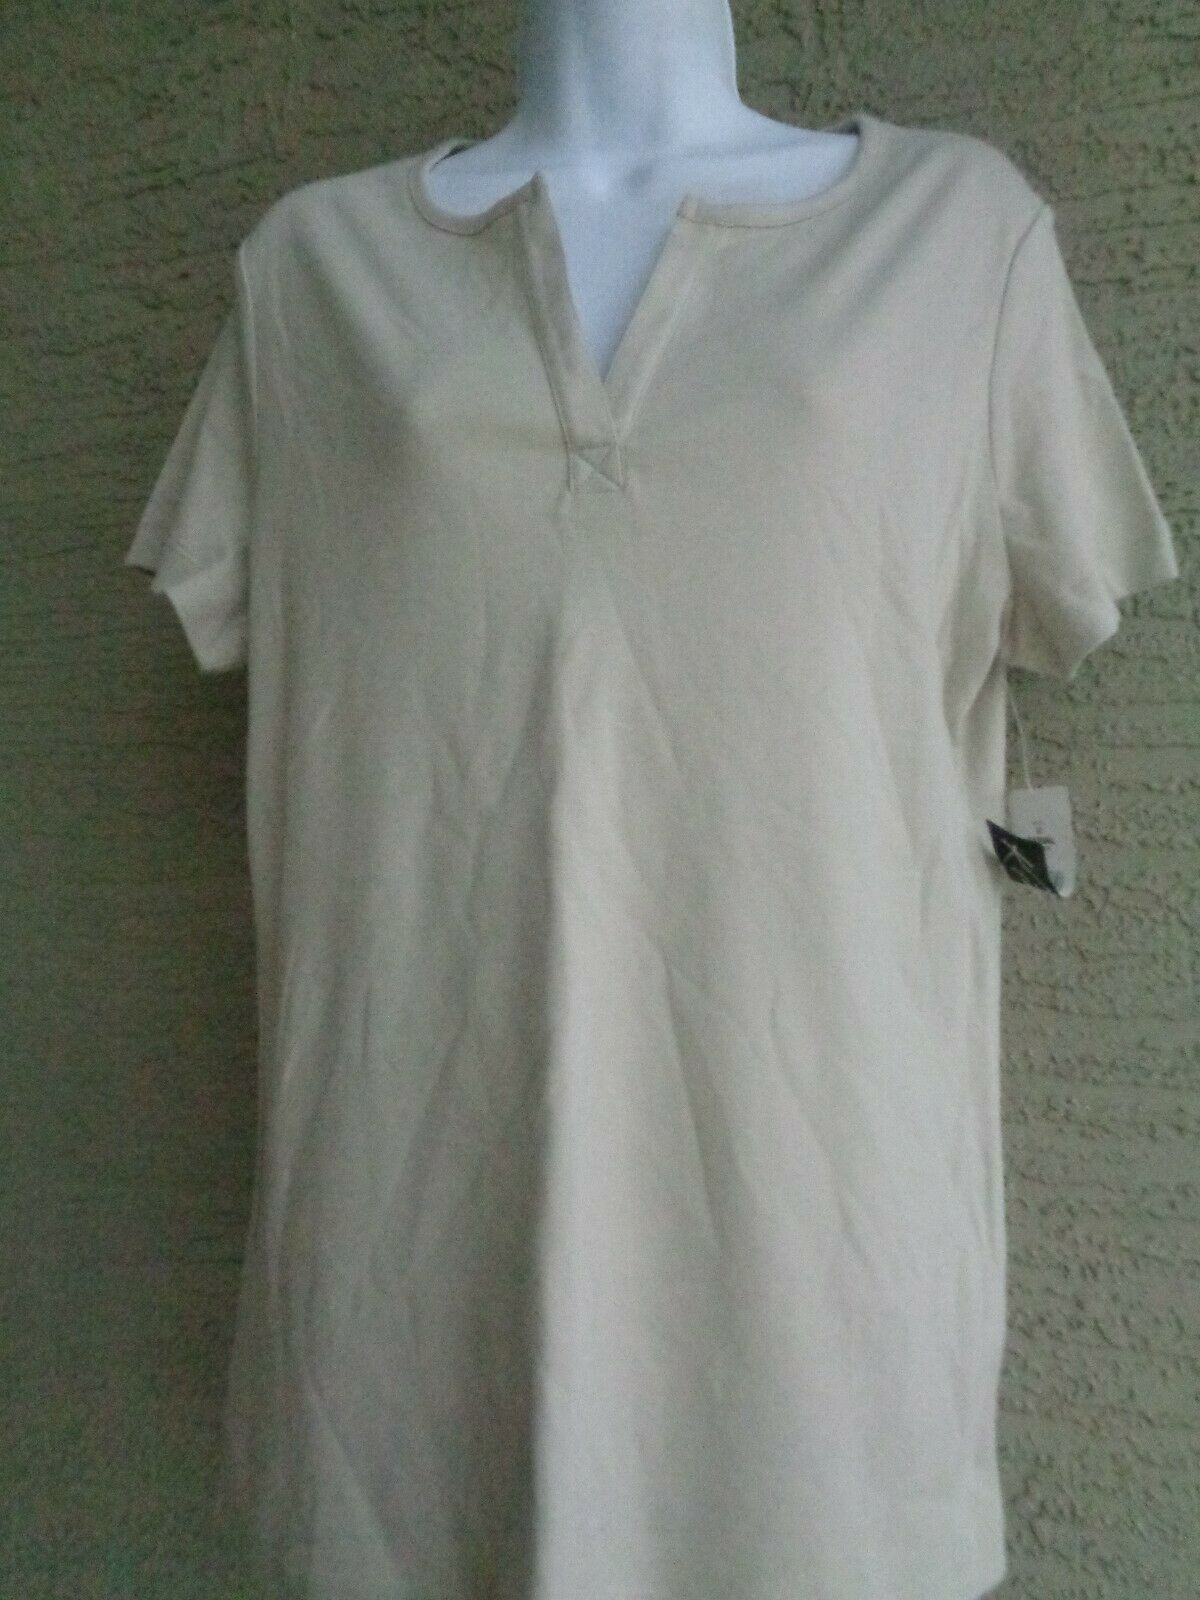 Primary image for Kim Rogers M Split Neck Tee Shirt S/S Heaver Weight Super Soft Cotton Beige